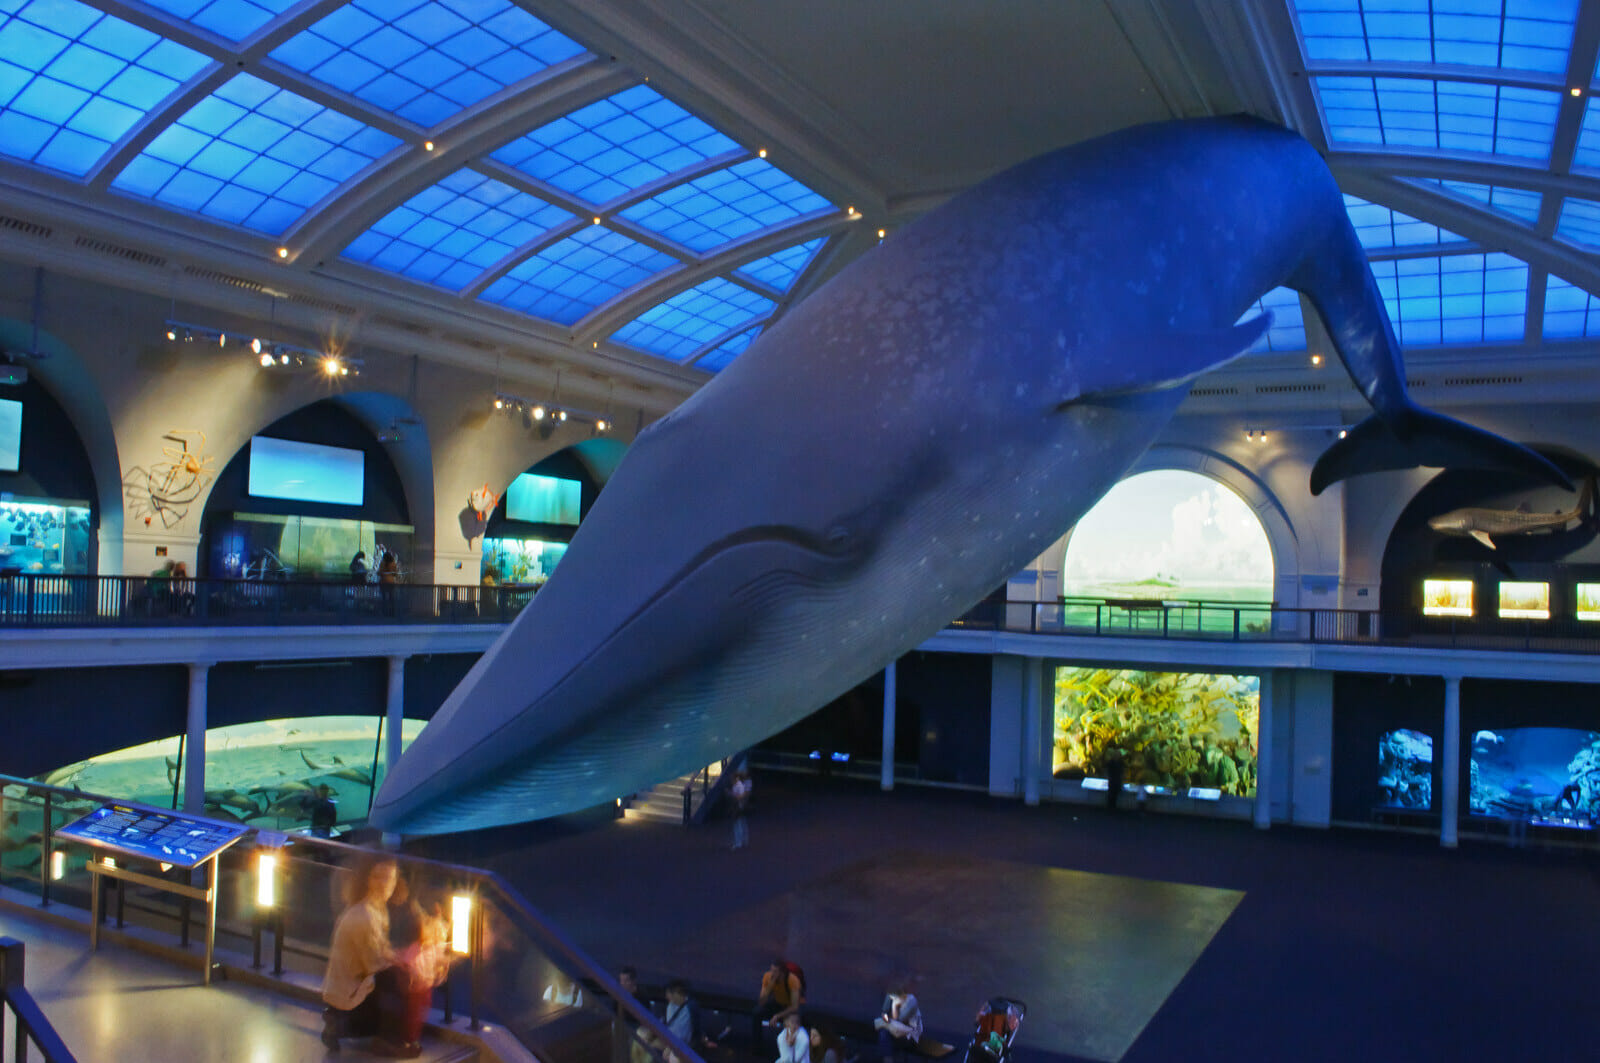 The Best 30th Birthday Party Ideas in NYC: sleep the musuem of natural history